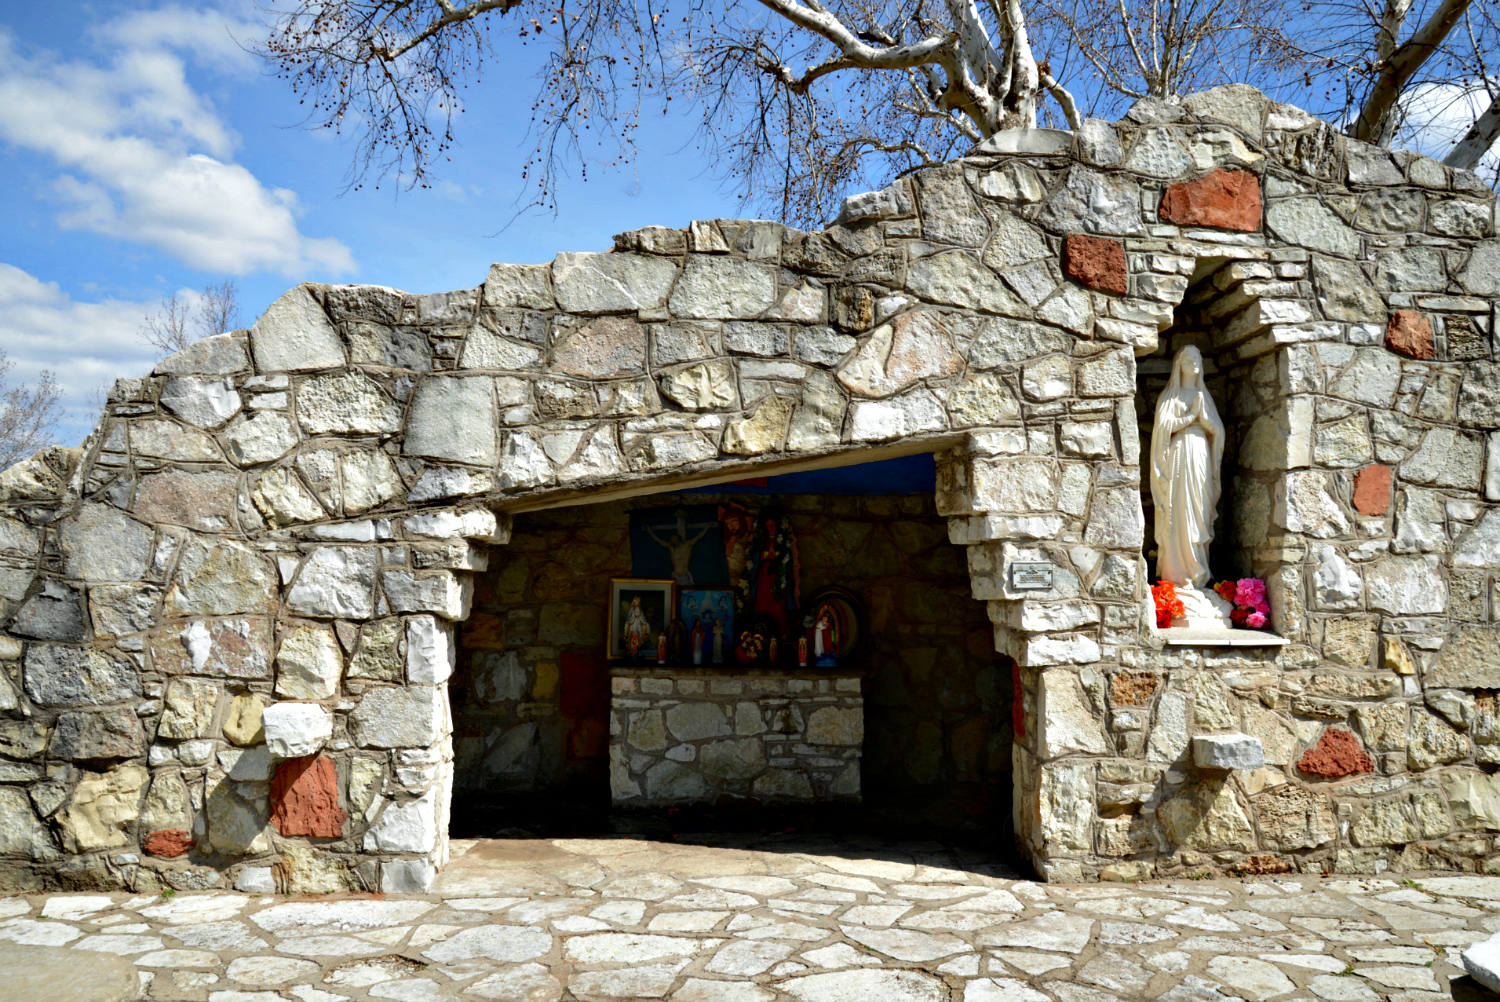 grotto with religious icons